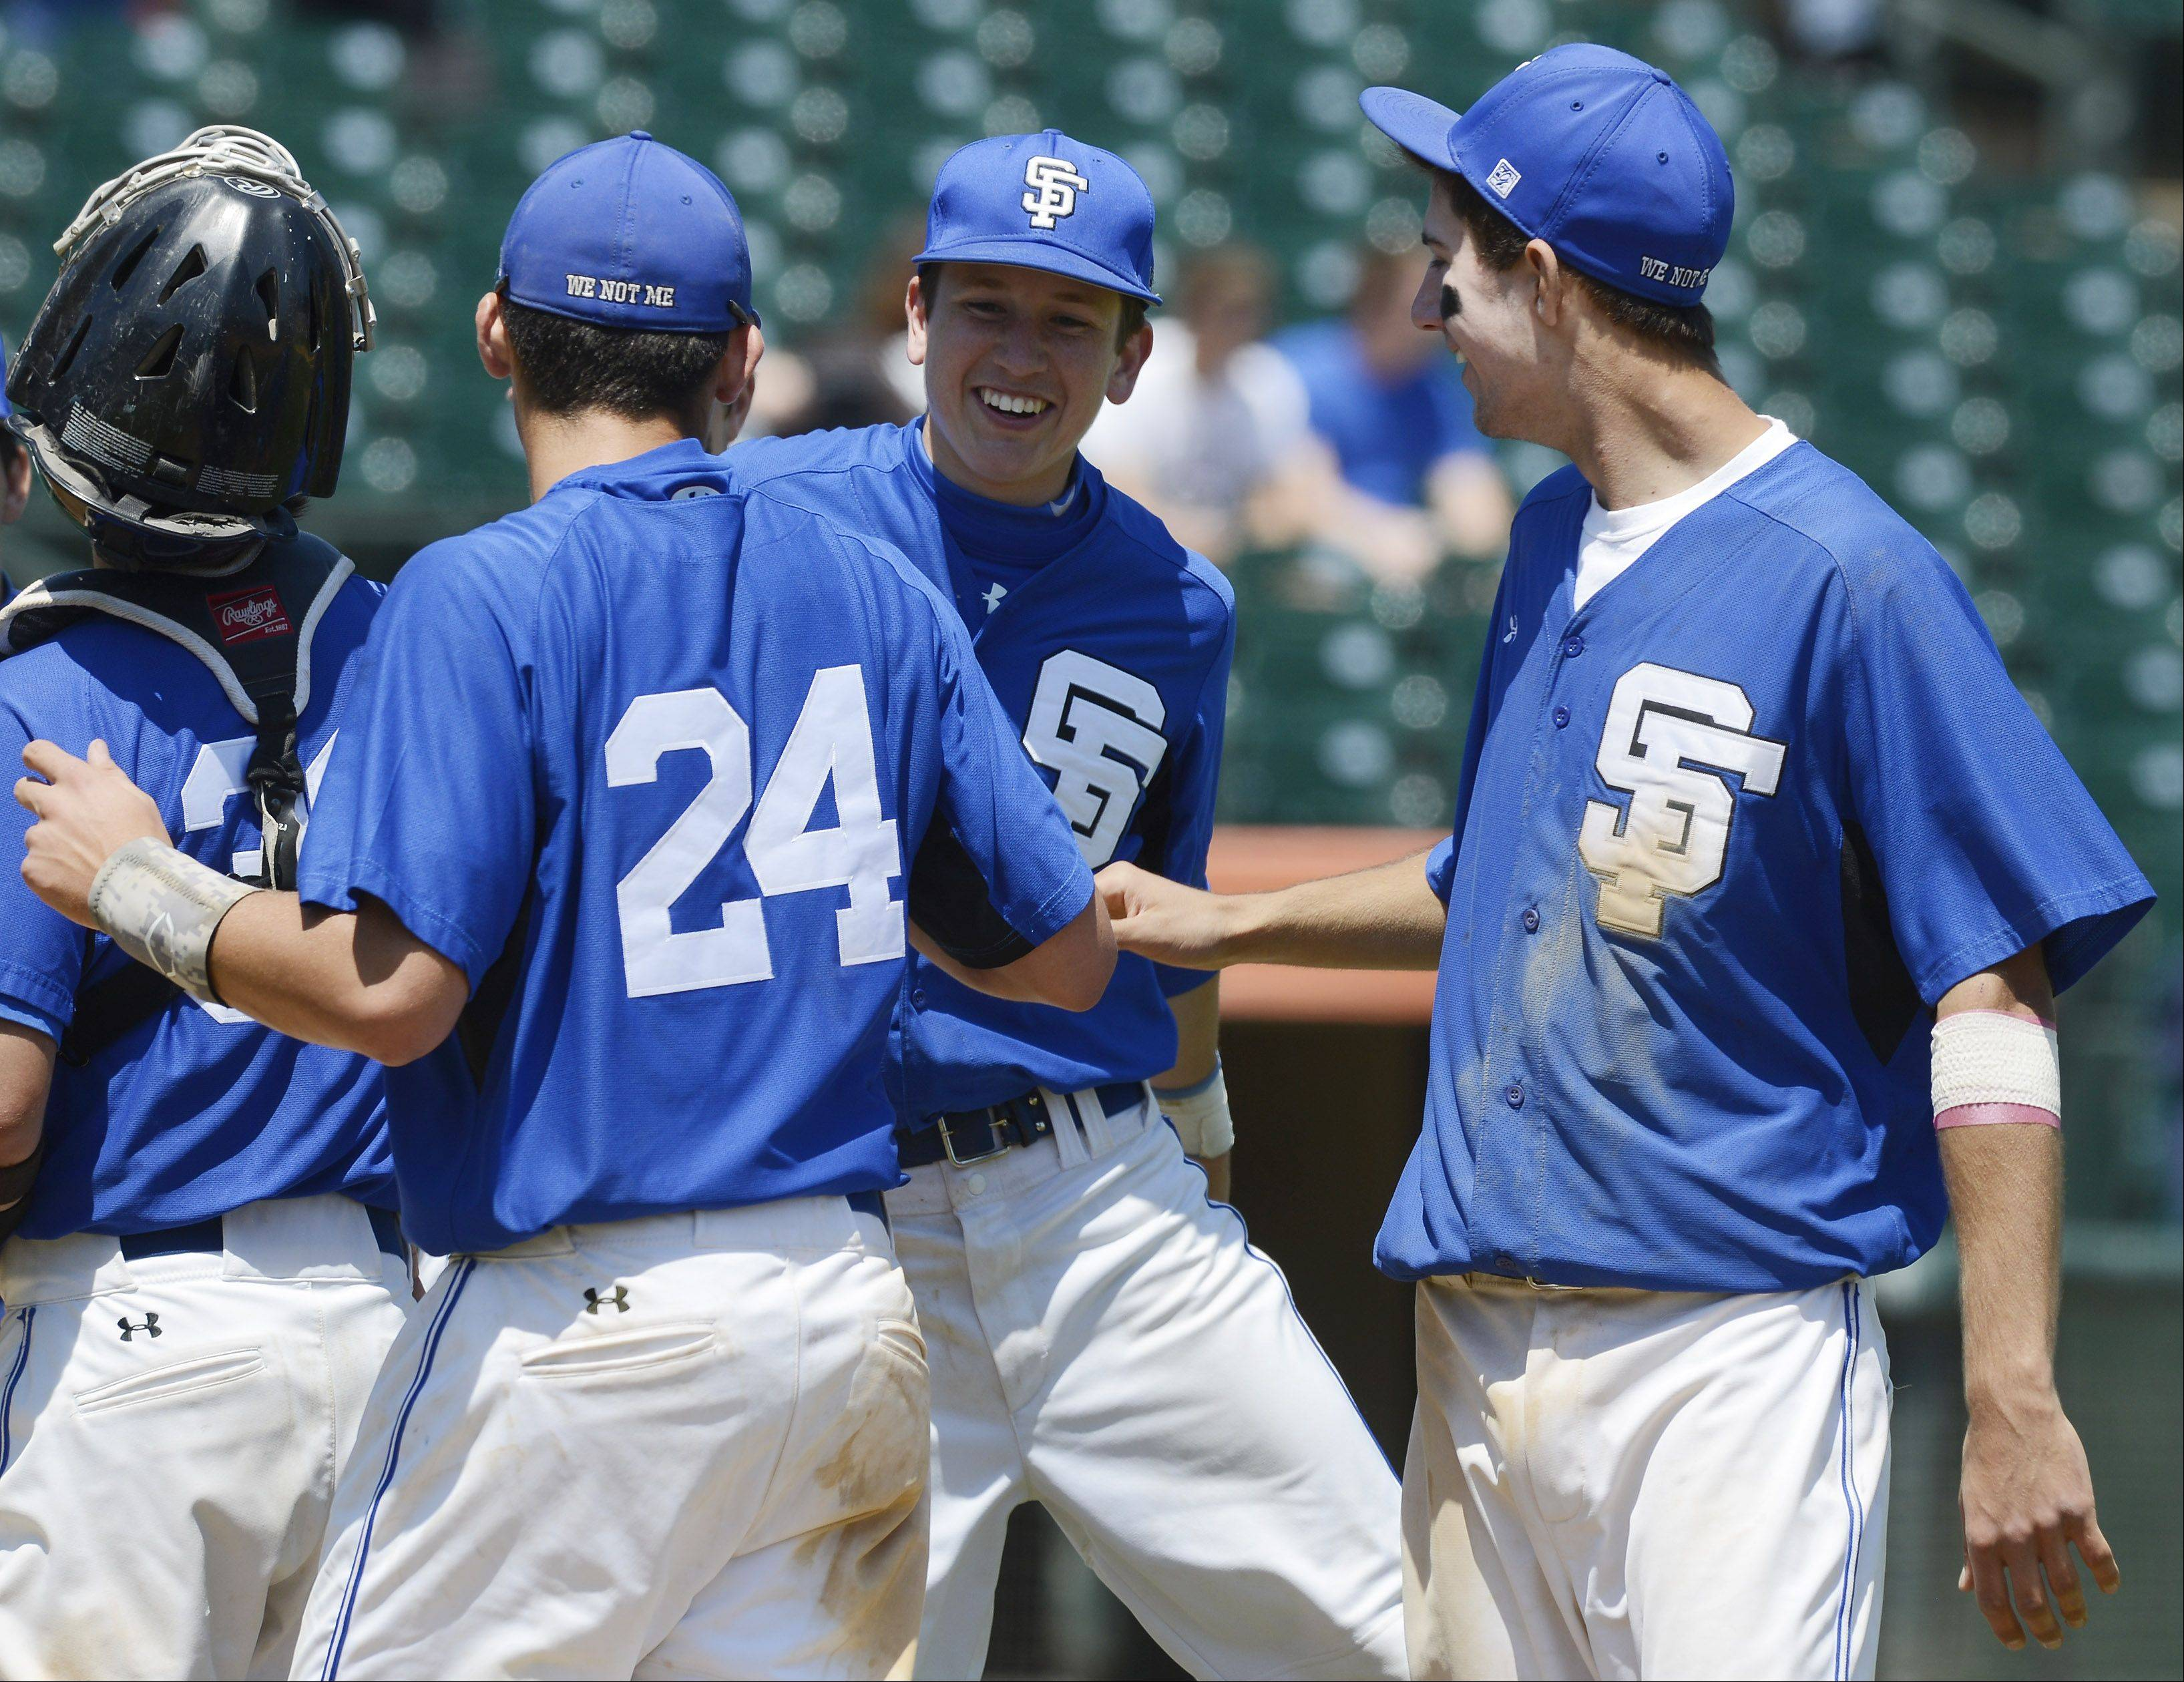 Left to right, St. Francis players Jason Sullivan, Jack Ciombor and Tim Zettinger celebrate their team's victory over Grayslake Central during the Class 3A state baseball semifinal at Silver Cross Field in Joliet on Friday.